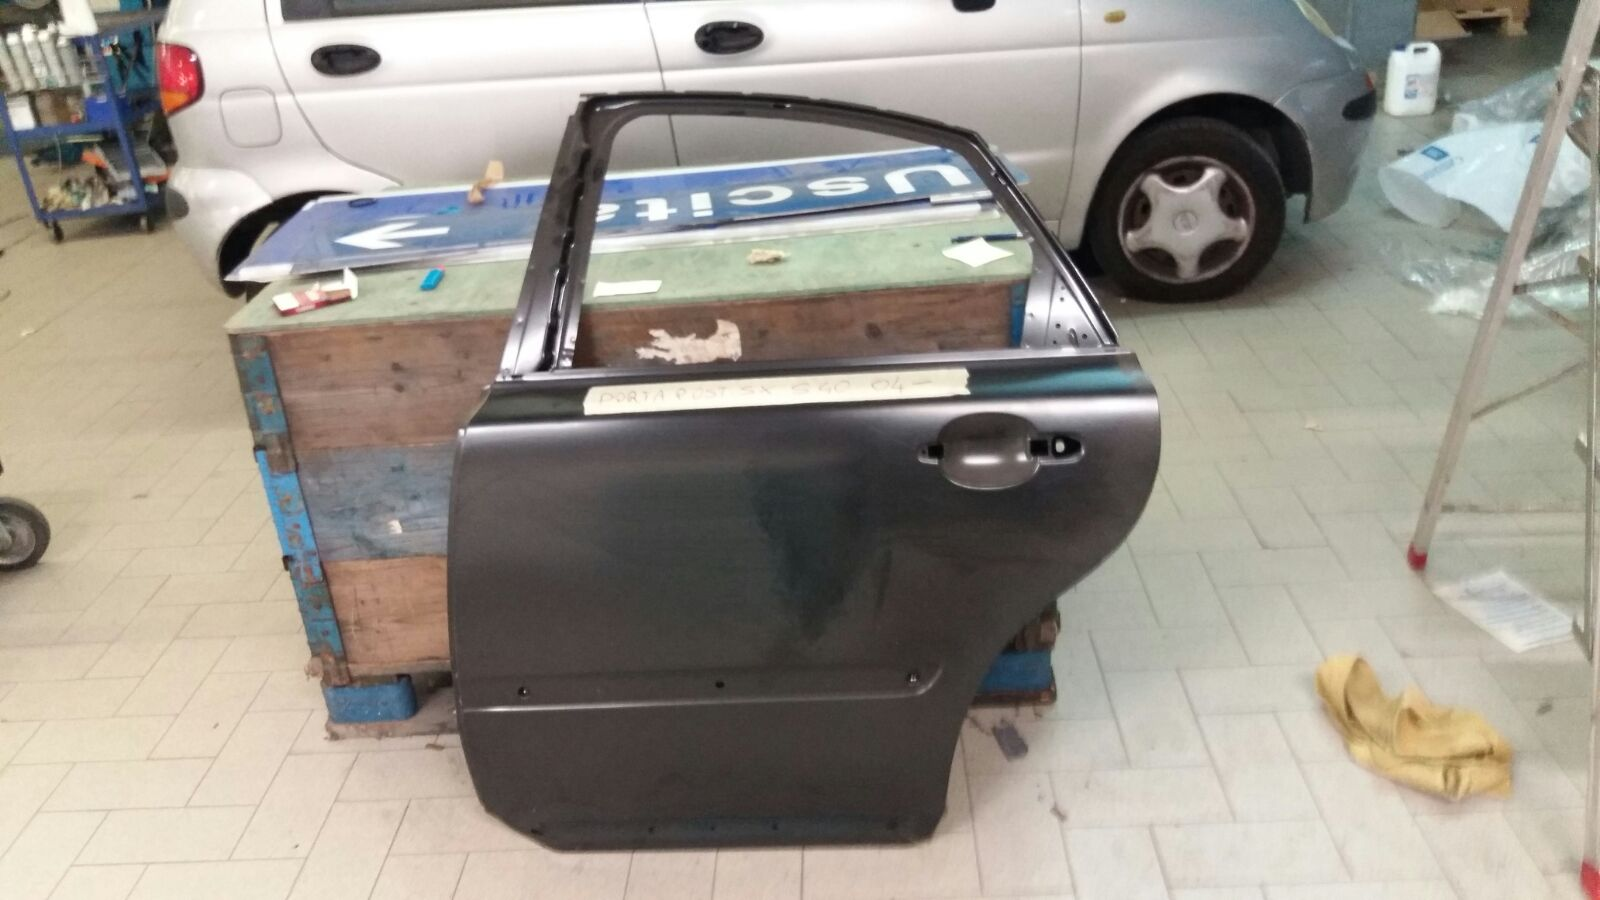 portiere volvo v50 - s80 - s40 - autoricambi online low cost